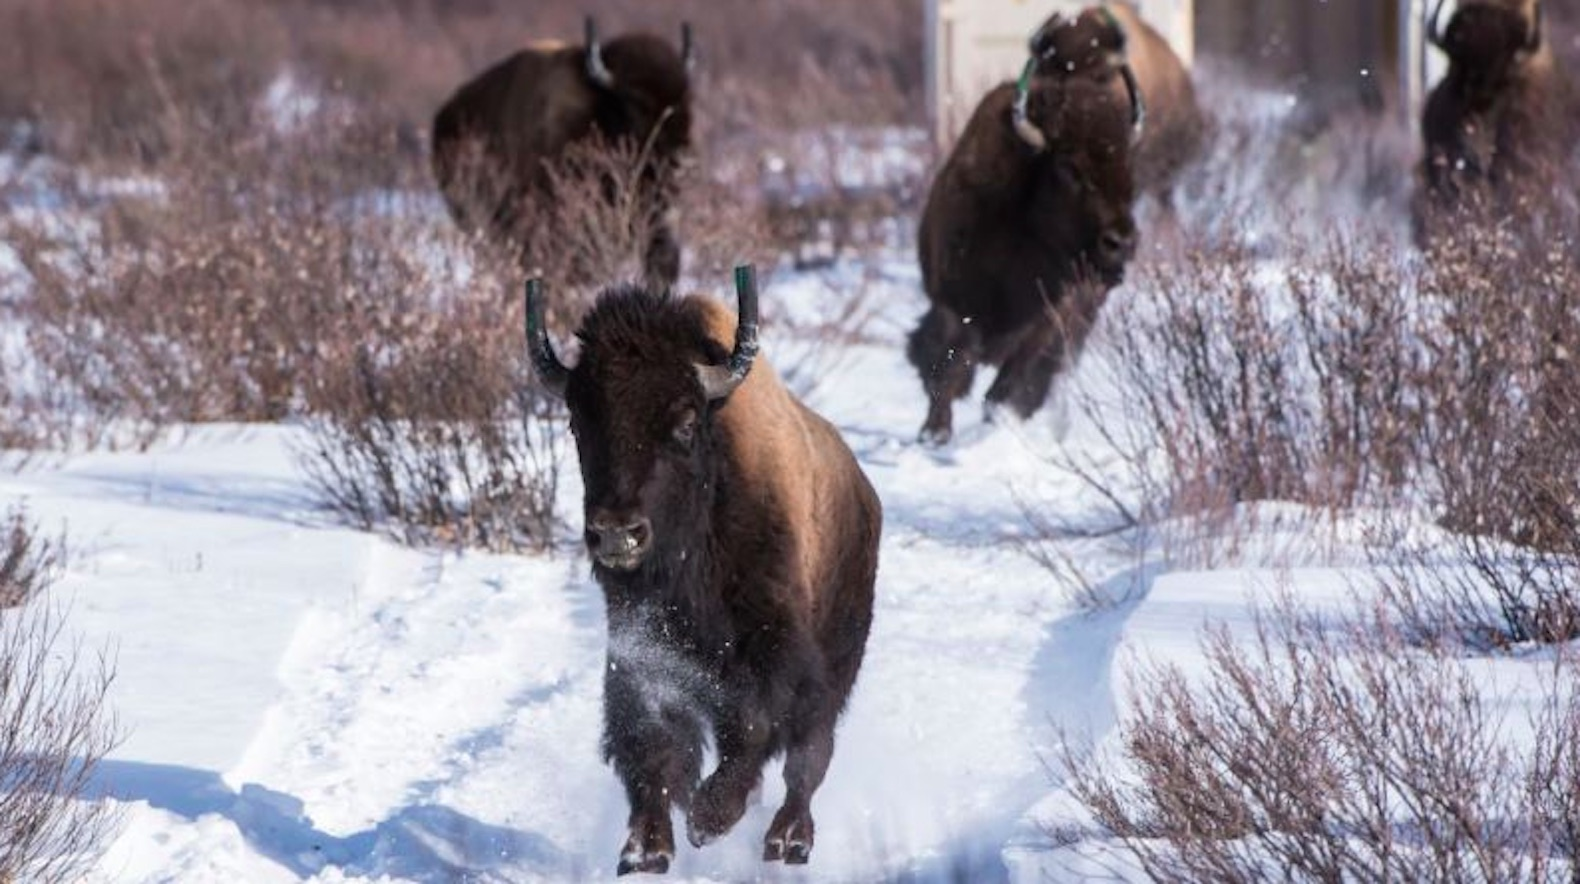 Wild bison return to Canada's Banff National Park for the first time in 140 years